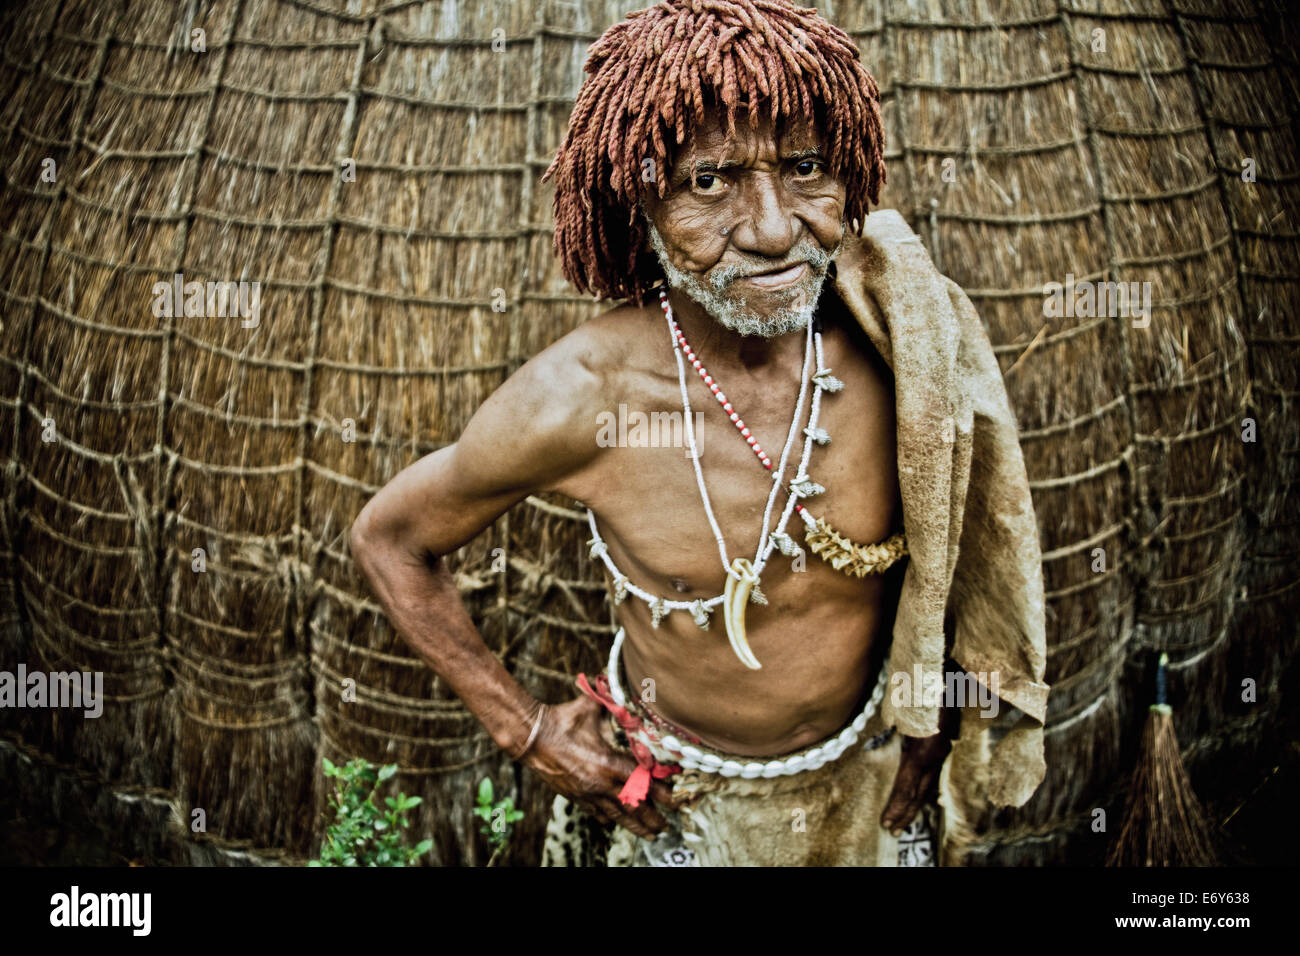 Traditional healer of a Swazi village in front of his grass hut, Swaziland, Africa - Stock Image